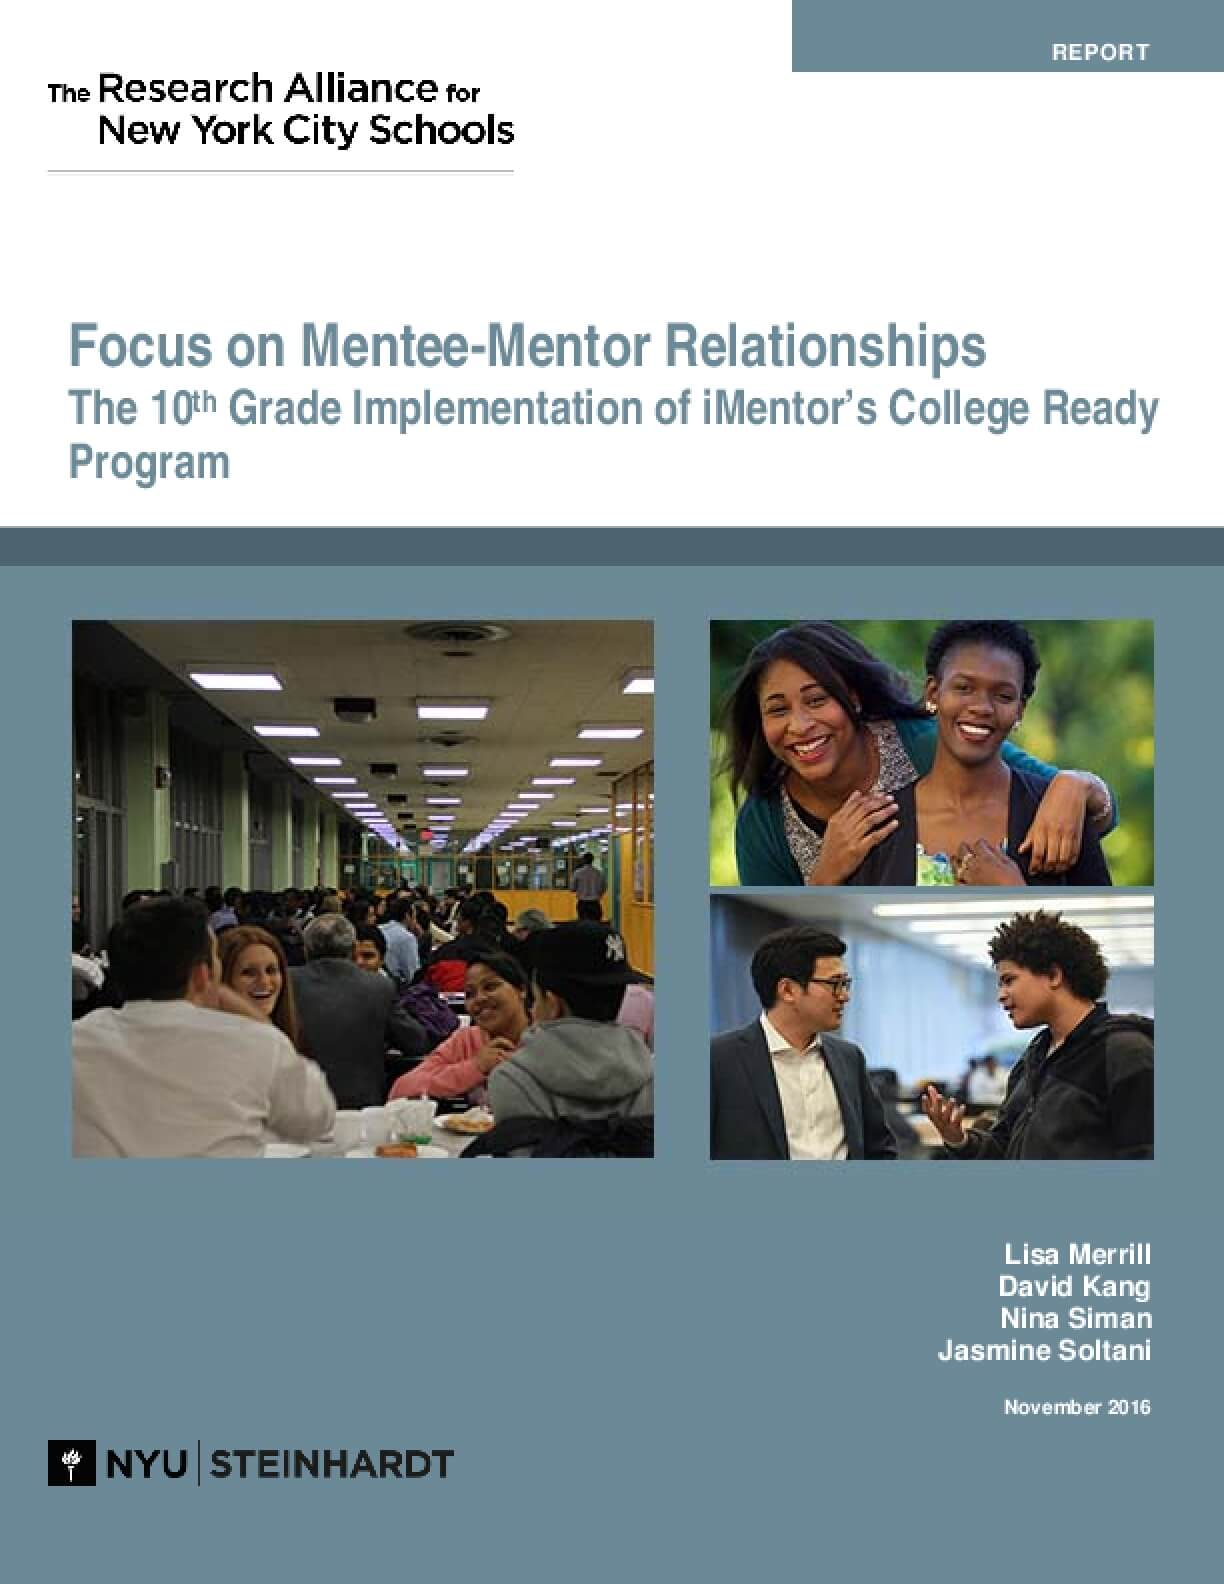 Focus on Mentee-Mentor Relationships: The 10th Grade Implementation of iMentor's College Ready Program